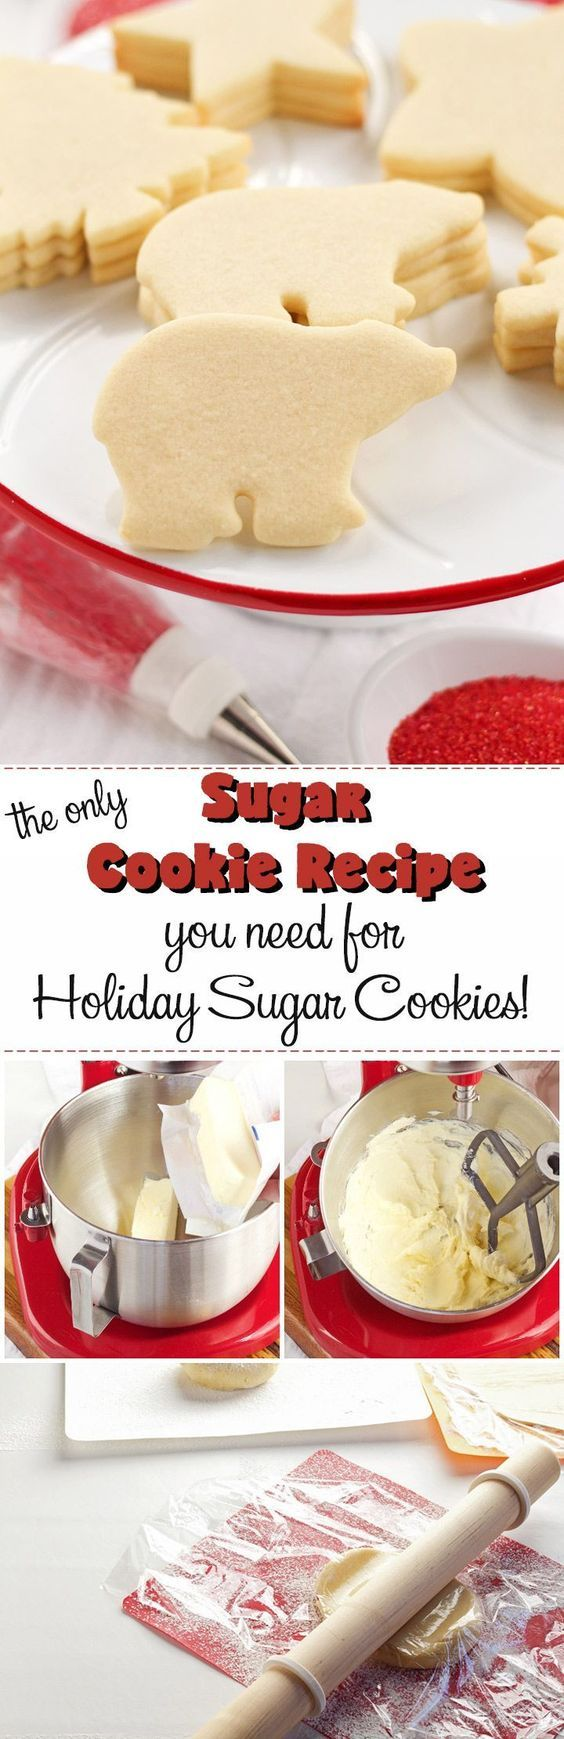 88 Best Cookies Dough Images On Pinterest Baking And Chocochips Elaine Dress Cream Beige M Sugar Cookie Recipe